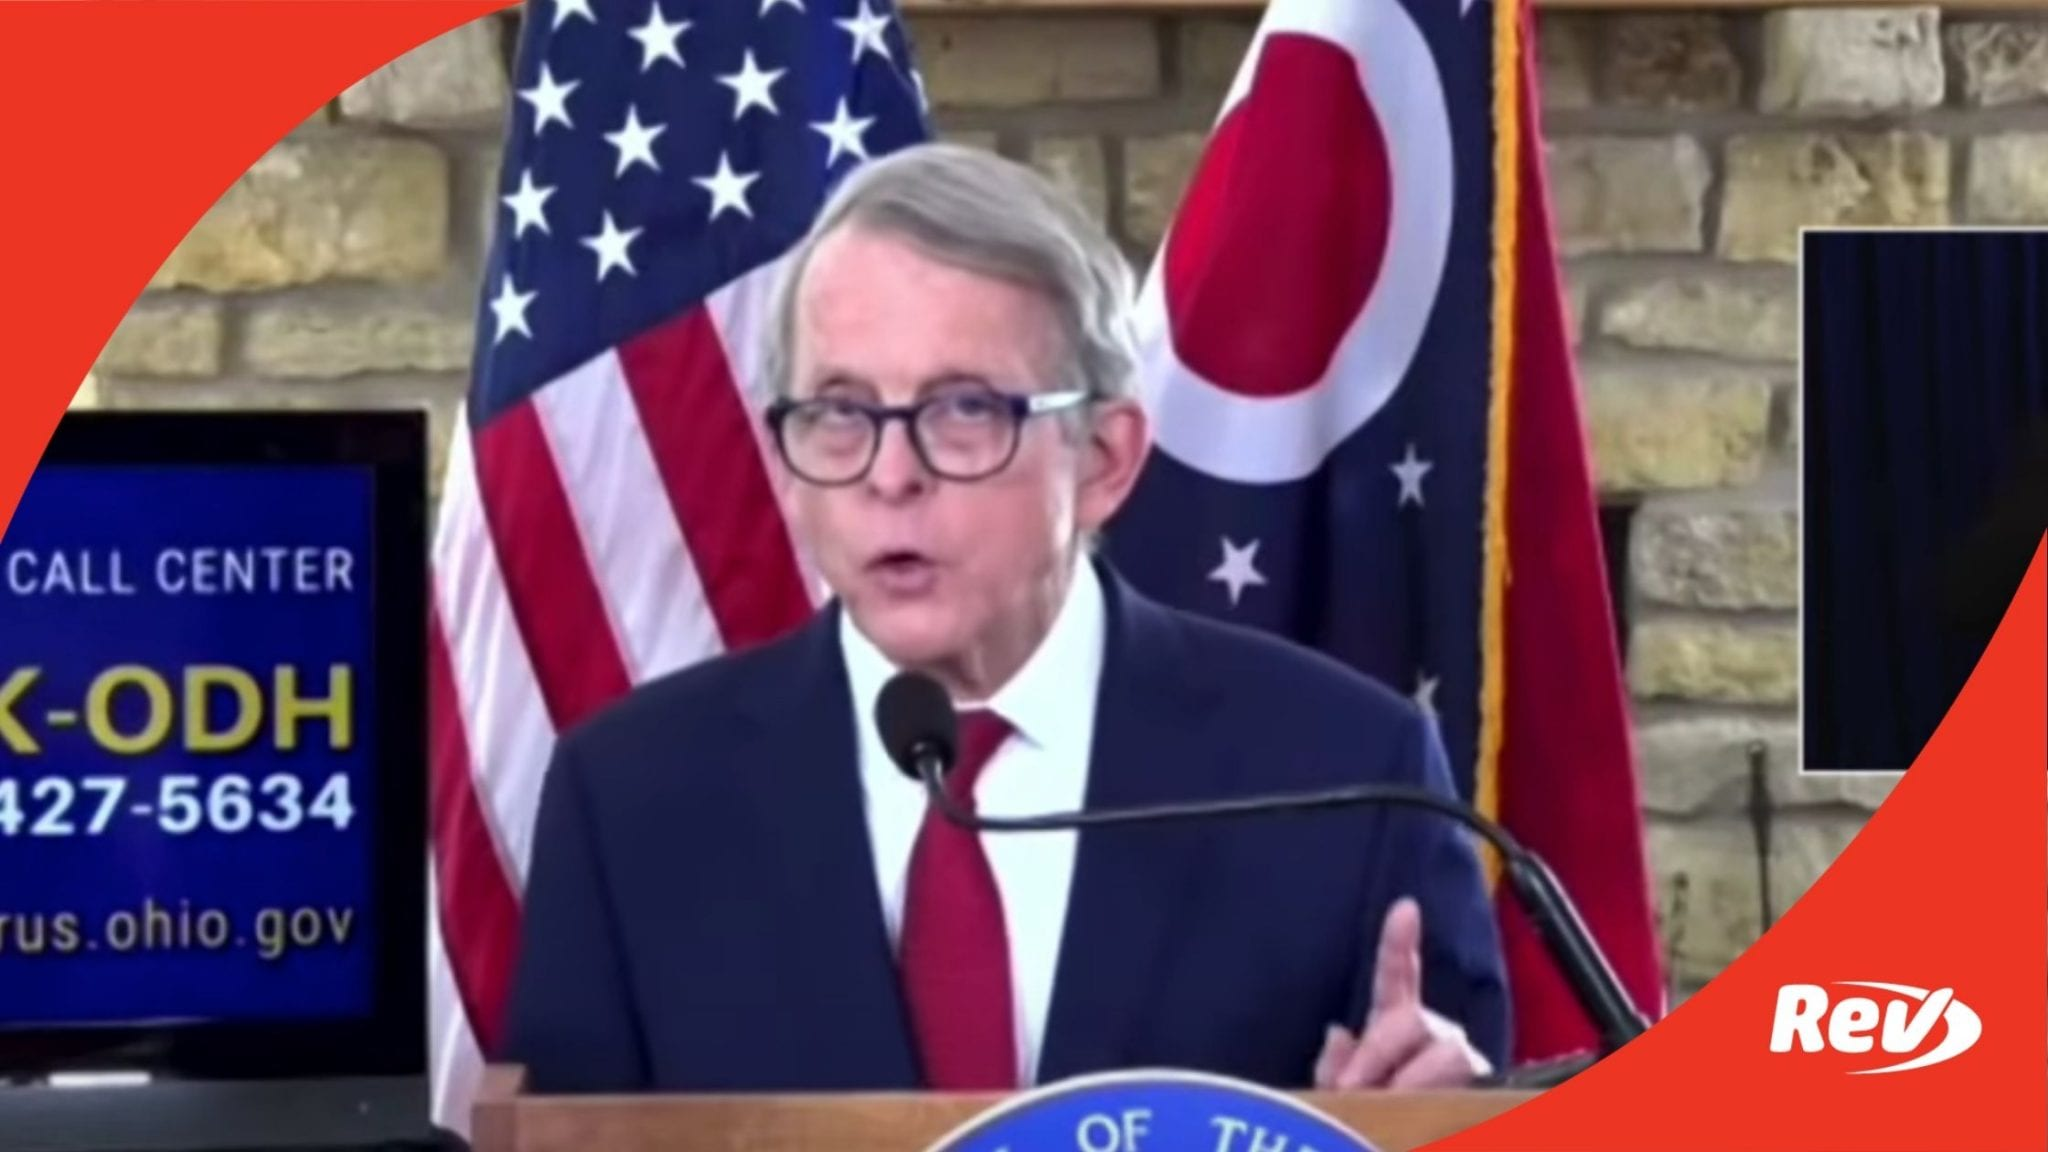 Ohio Gov. Mike DeWine COVID-19 Press Conference Transcript February 2